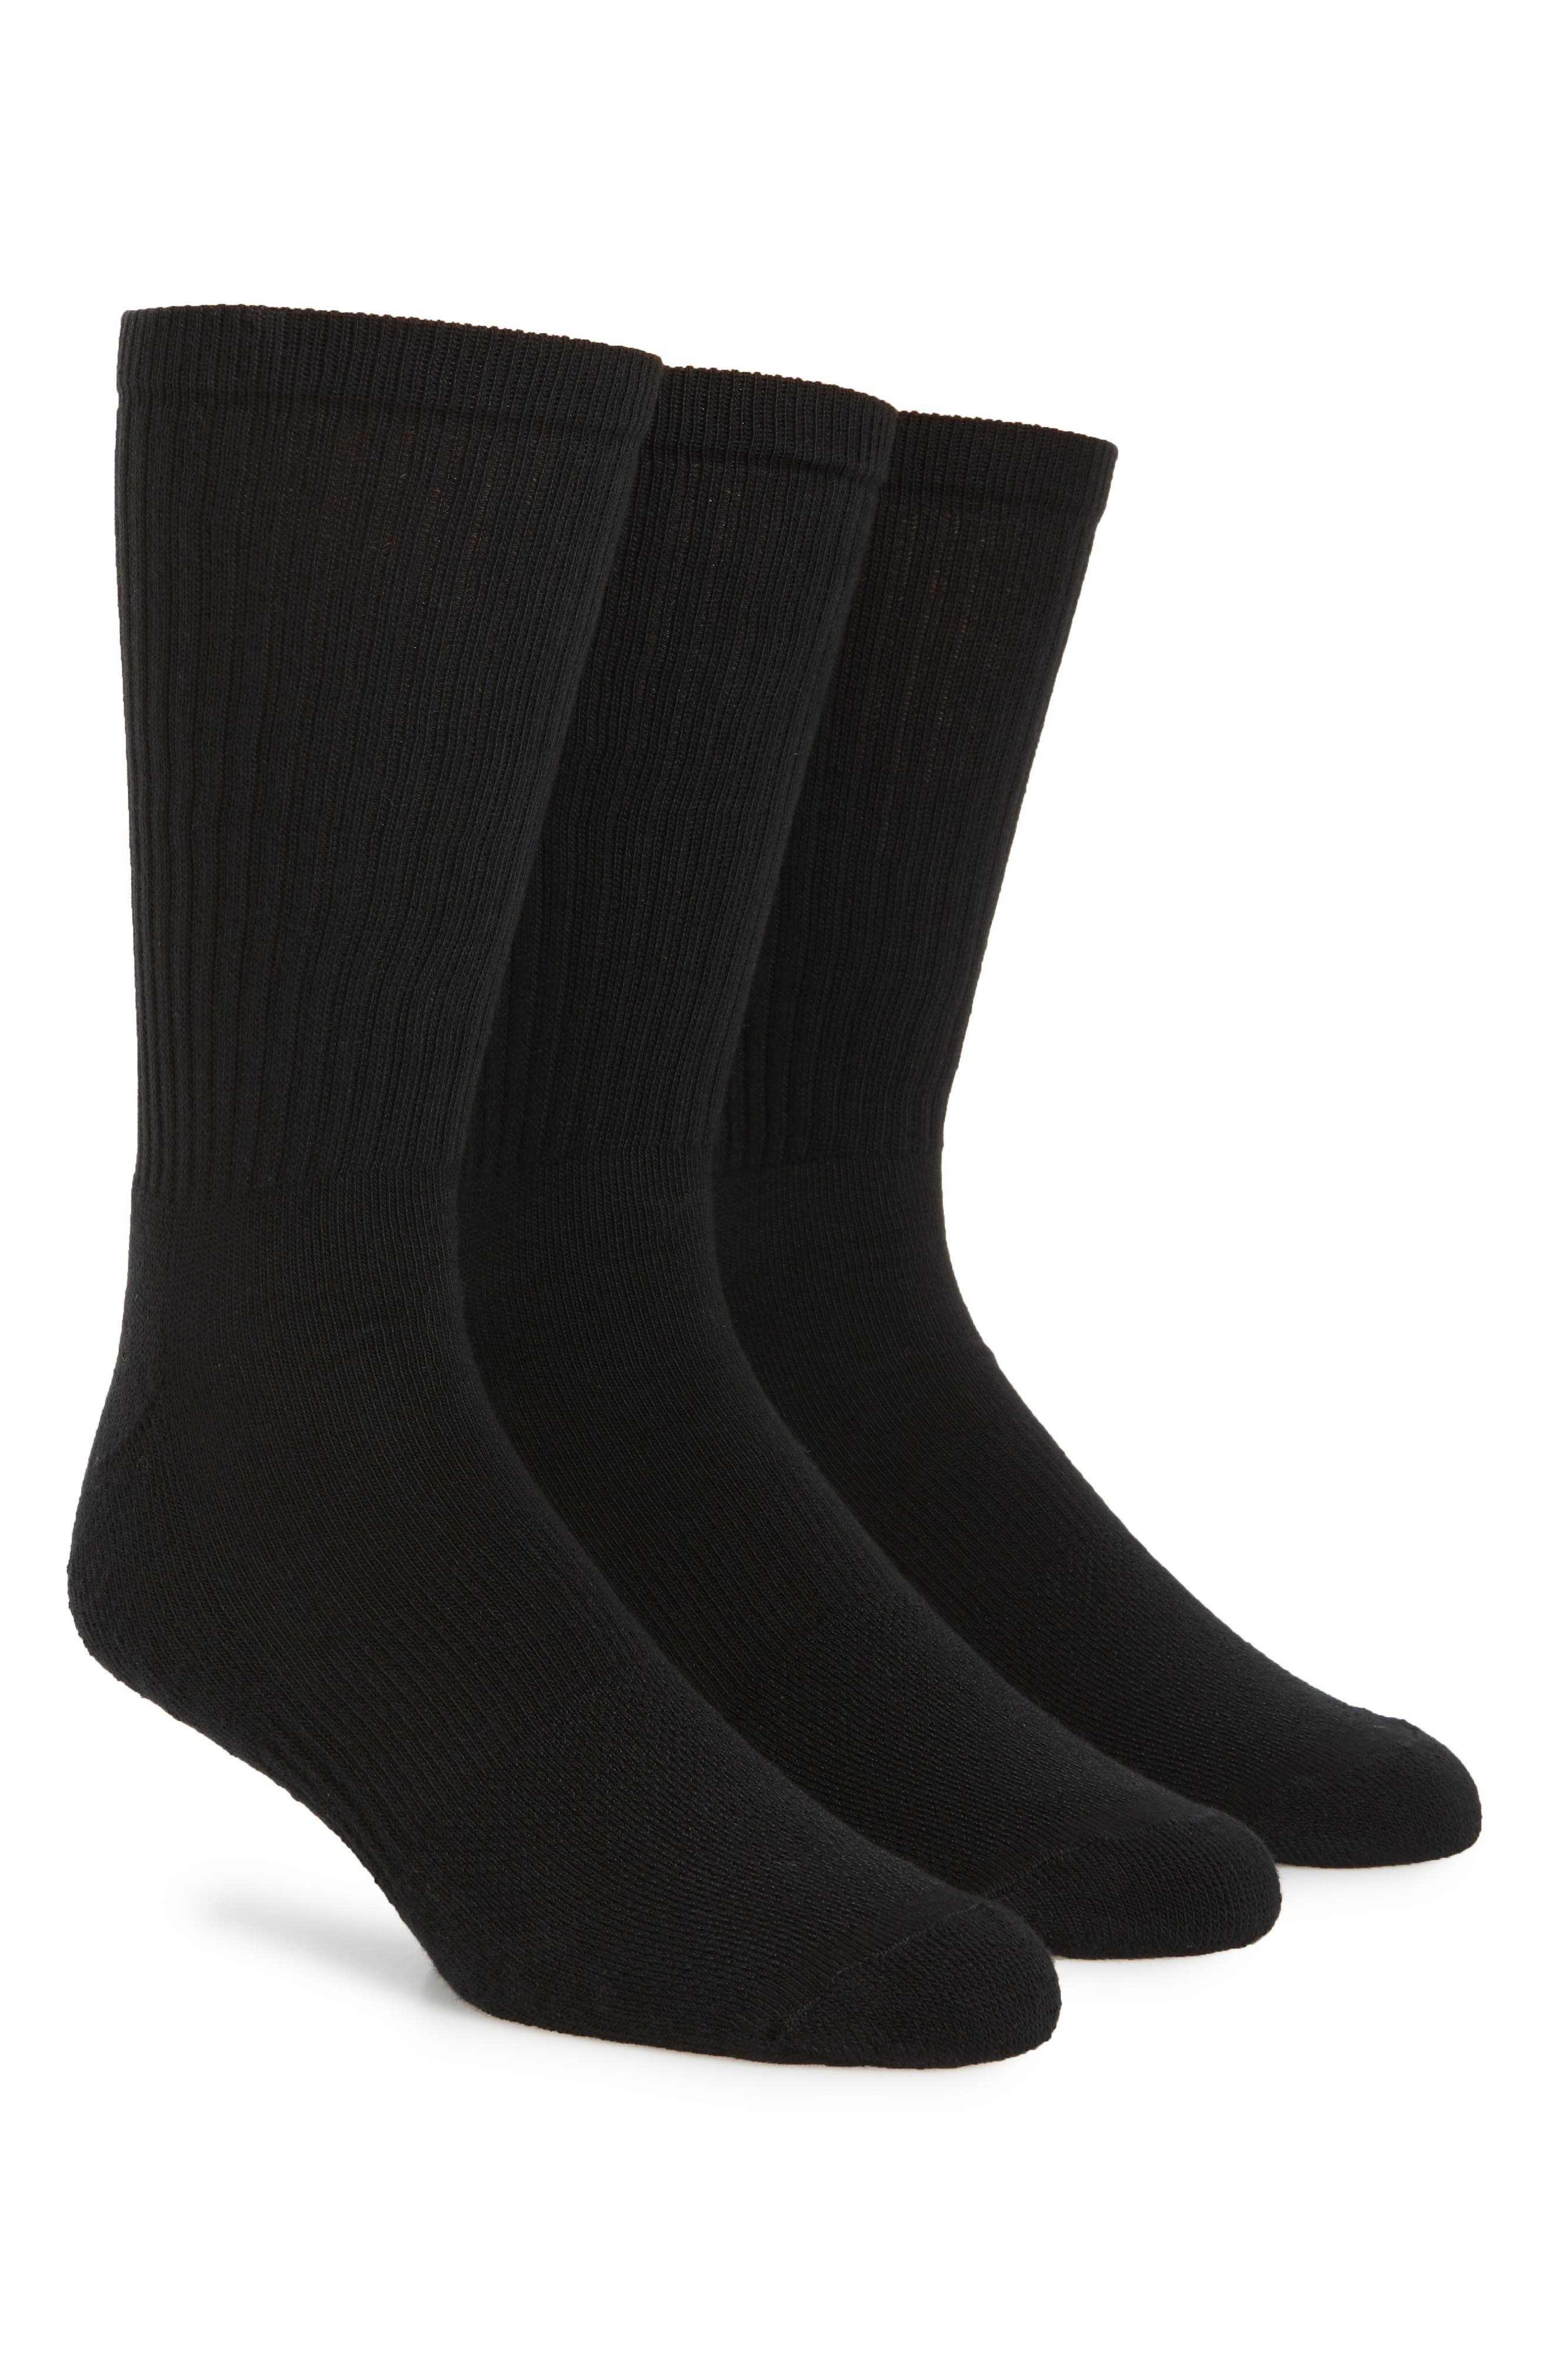 3-Pack Crew Cut Athletic Socks,                         Main,                         color, BLACK